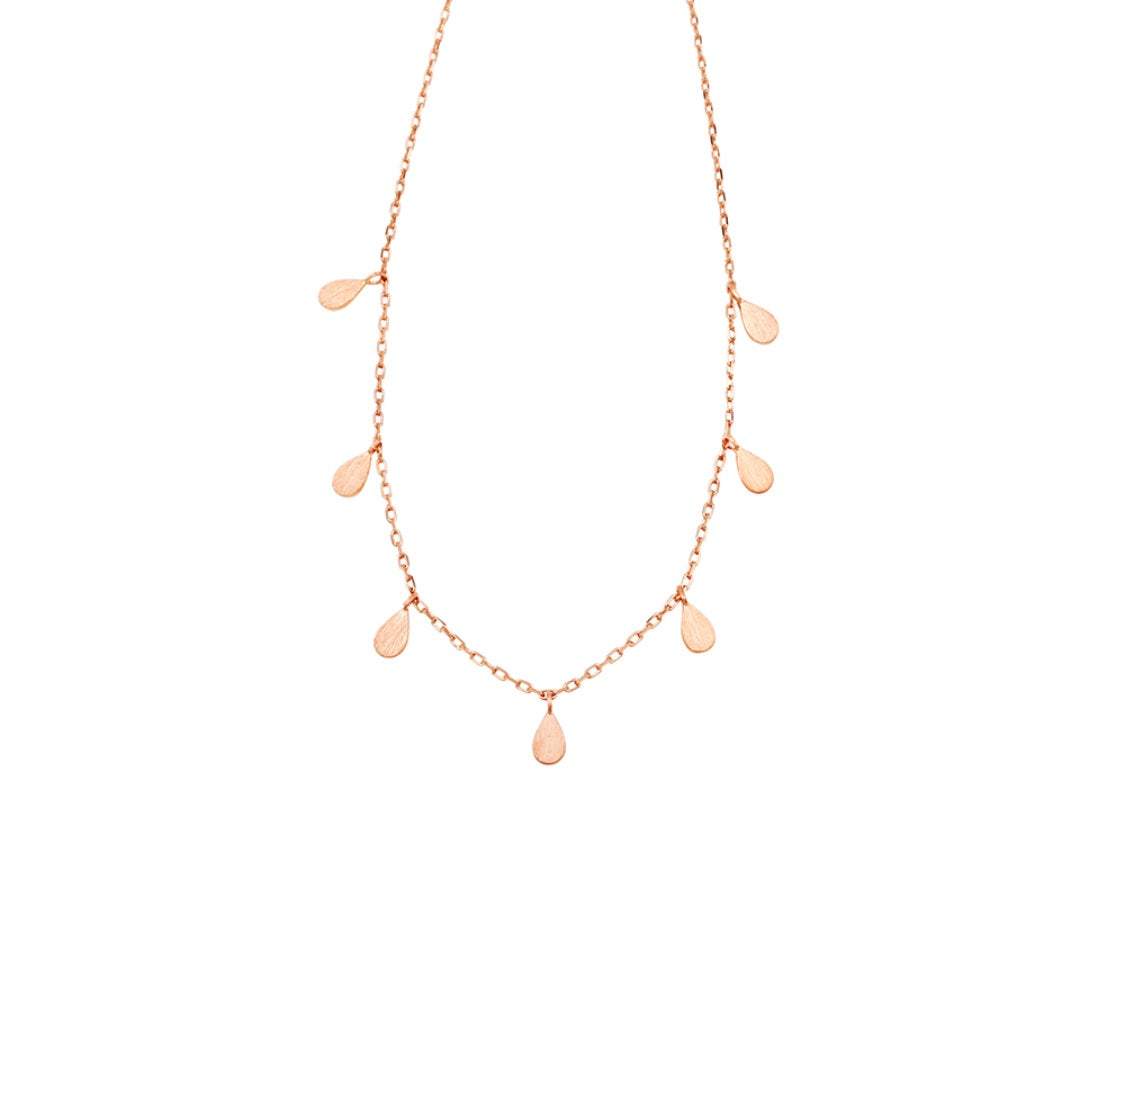 Jolie and Deen Teardrop necklace